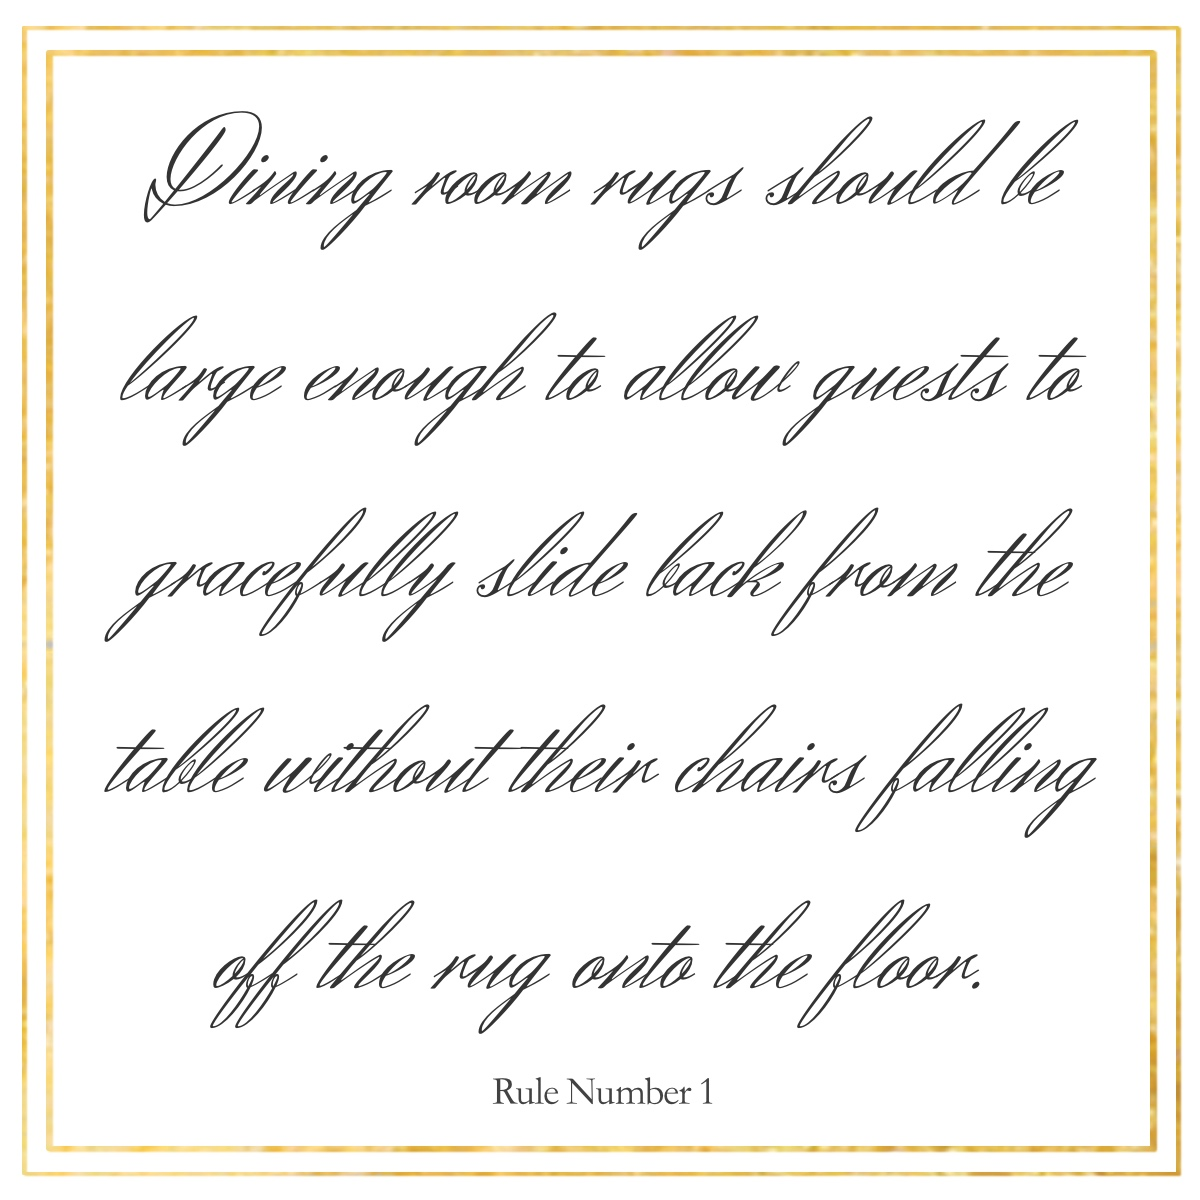 The Rules of Breaking Rules Host and Serve : Rule Number 1 Dining Room Rugs from hostandserve.com size 1200 x 1200 jpeg 264kB